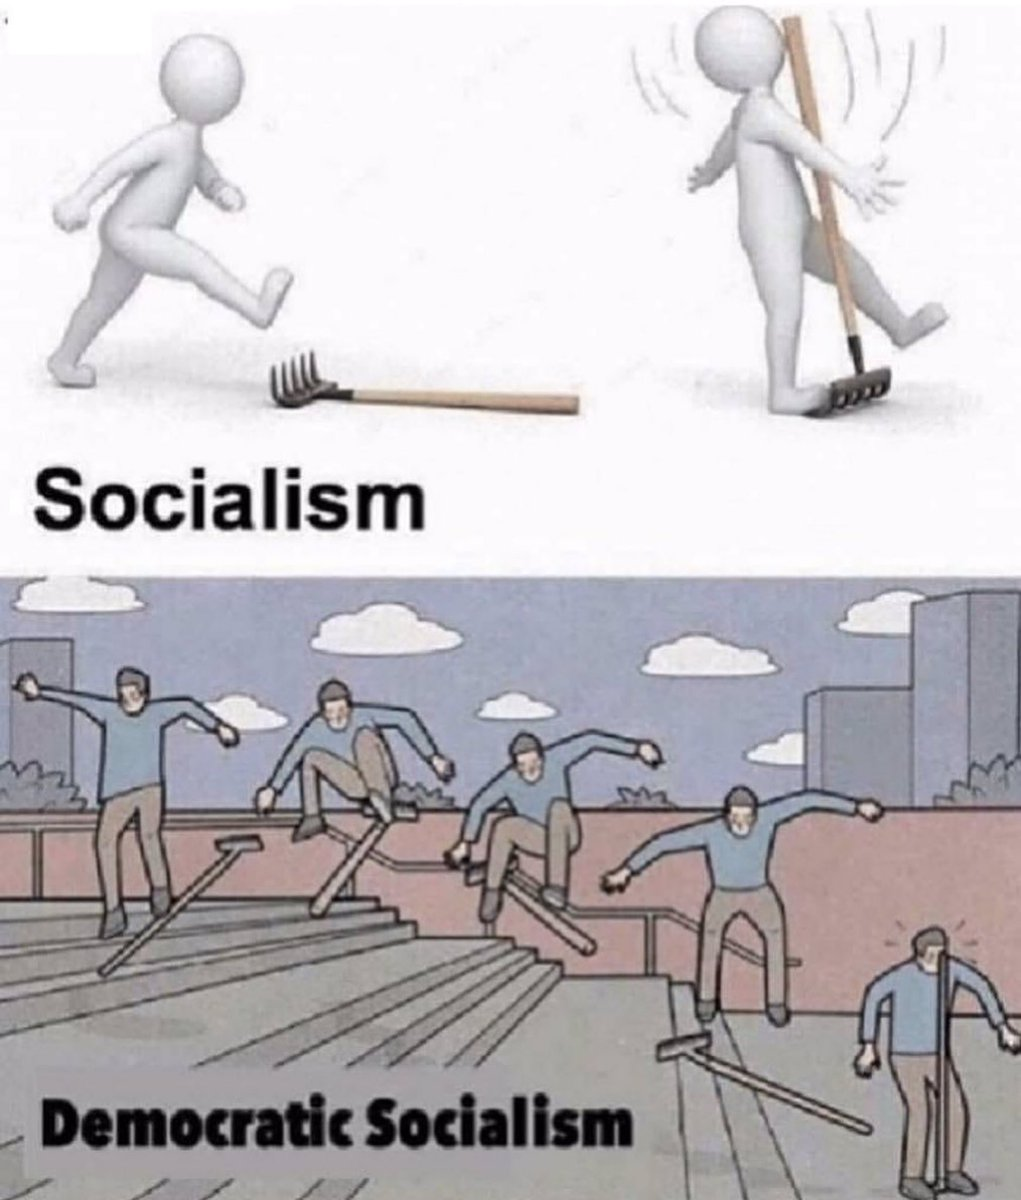 A socialist system by any other name still fails the same  #socialist #socialism #socialistmemes #democraticsocialismpic.twitter.com/ZLI8q4A4sg